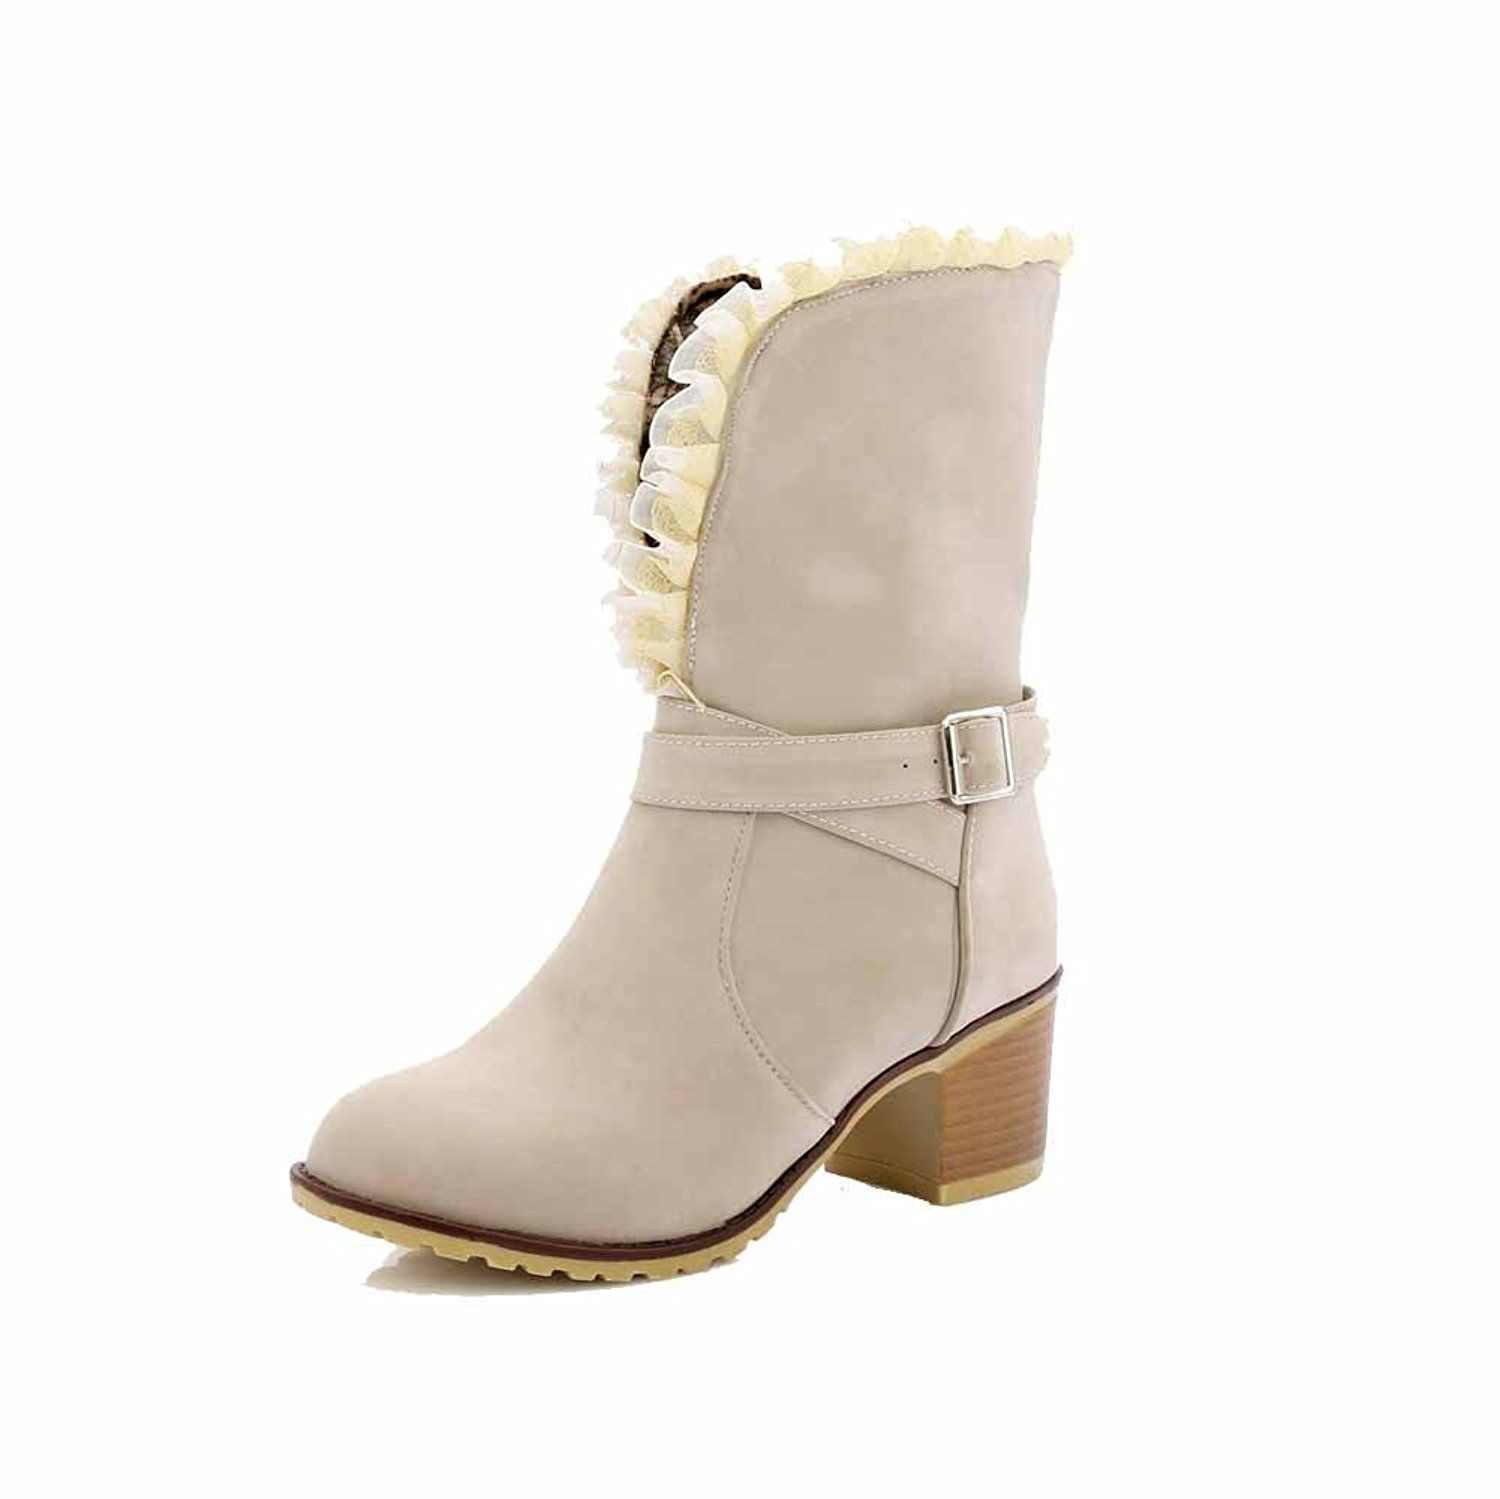 Women's Solid Frosted Kitten Heels Buckle Round Closed Toe Boots